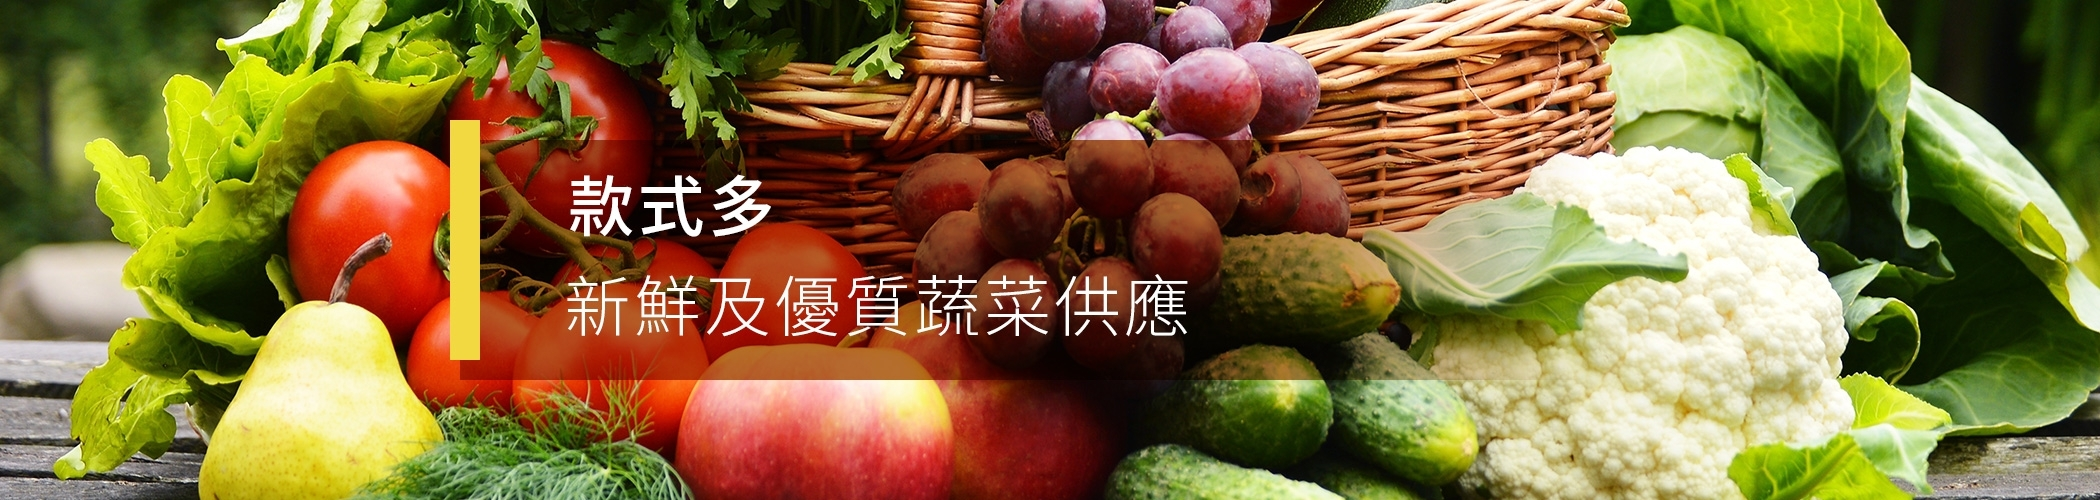 vegetables_banner_tc